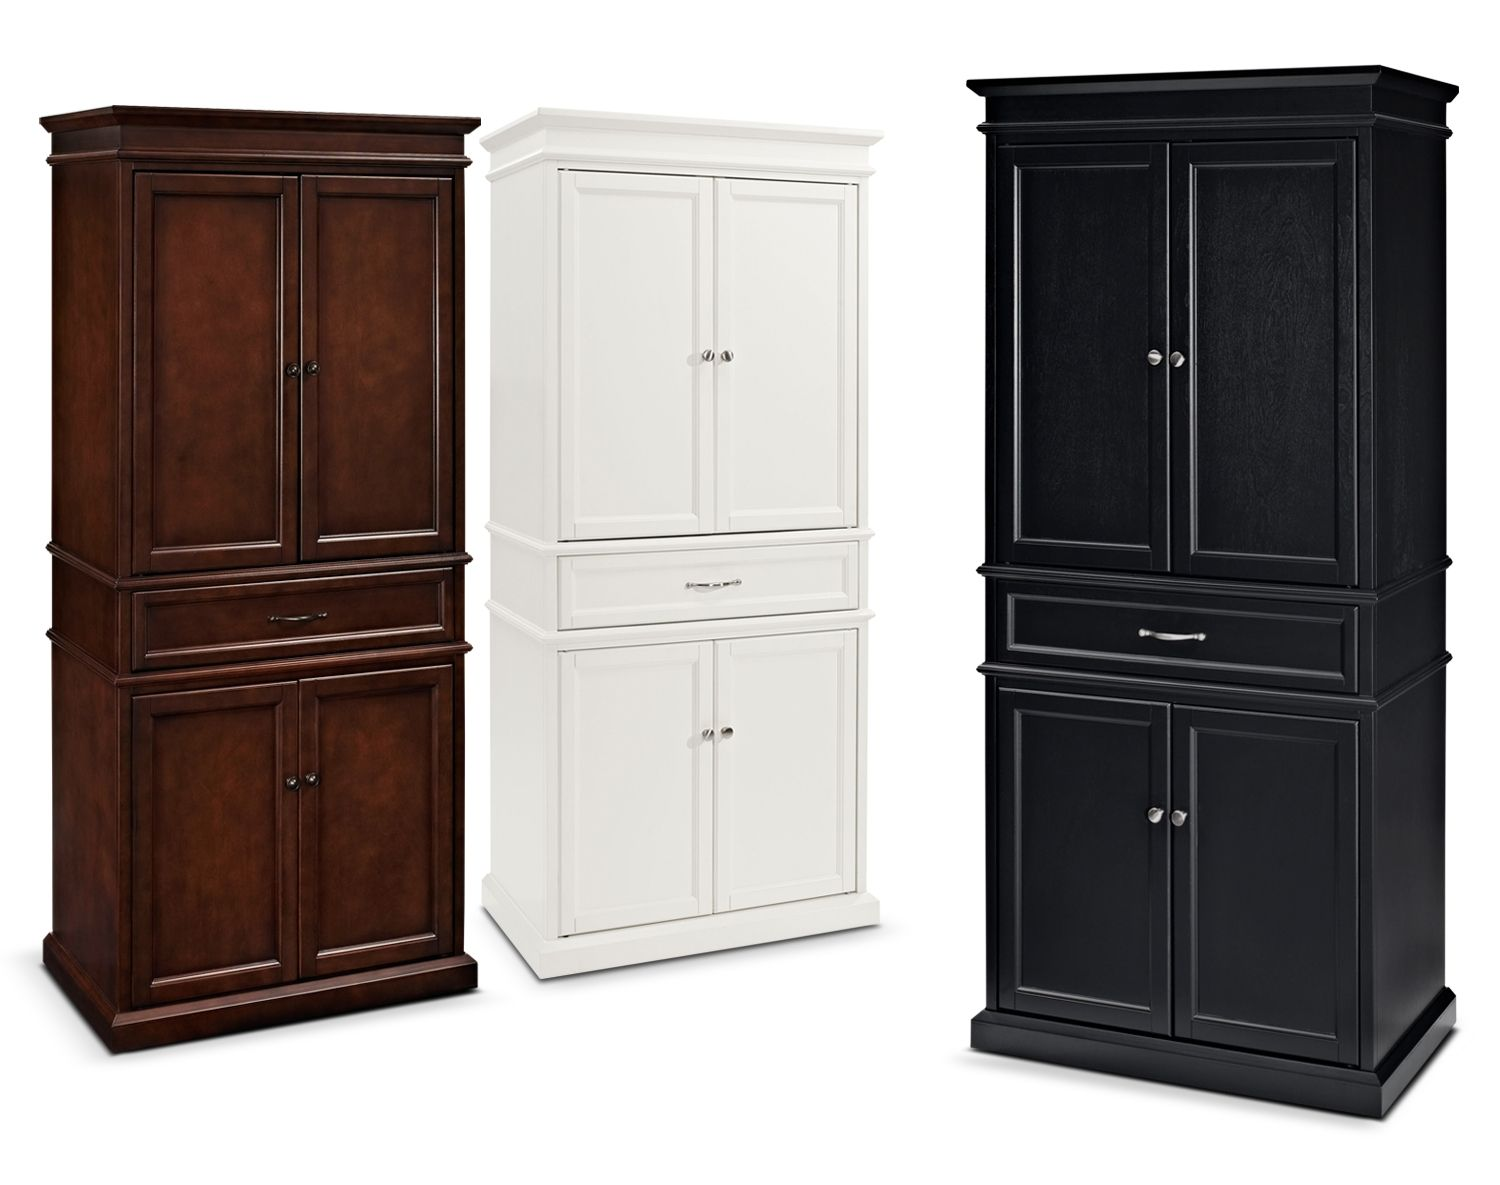 The Midway Pantry Collection  Formal dining room sets, Value city